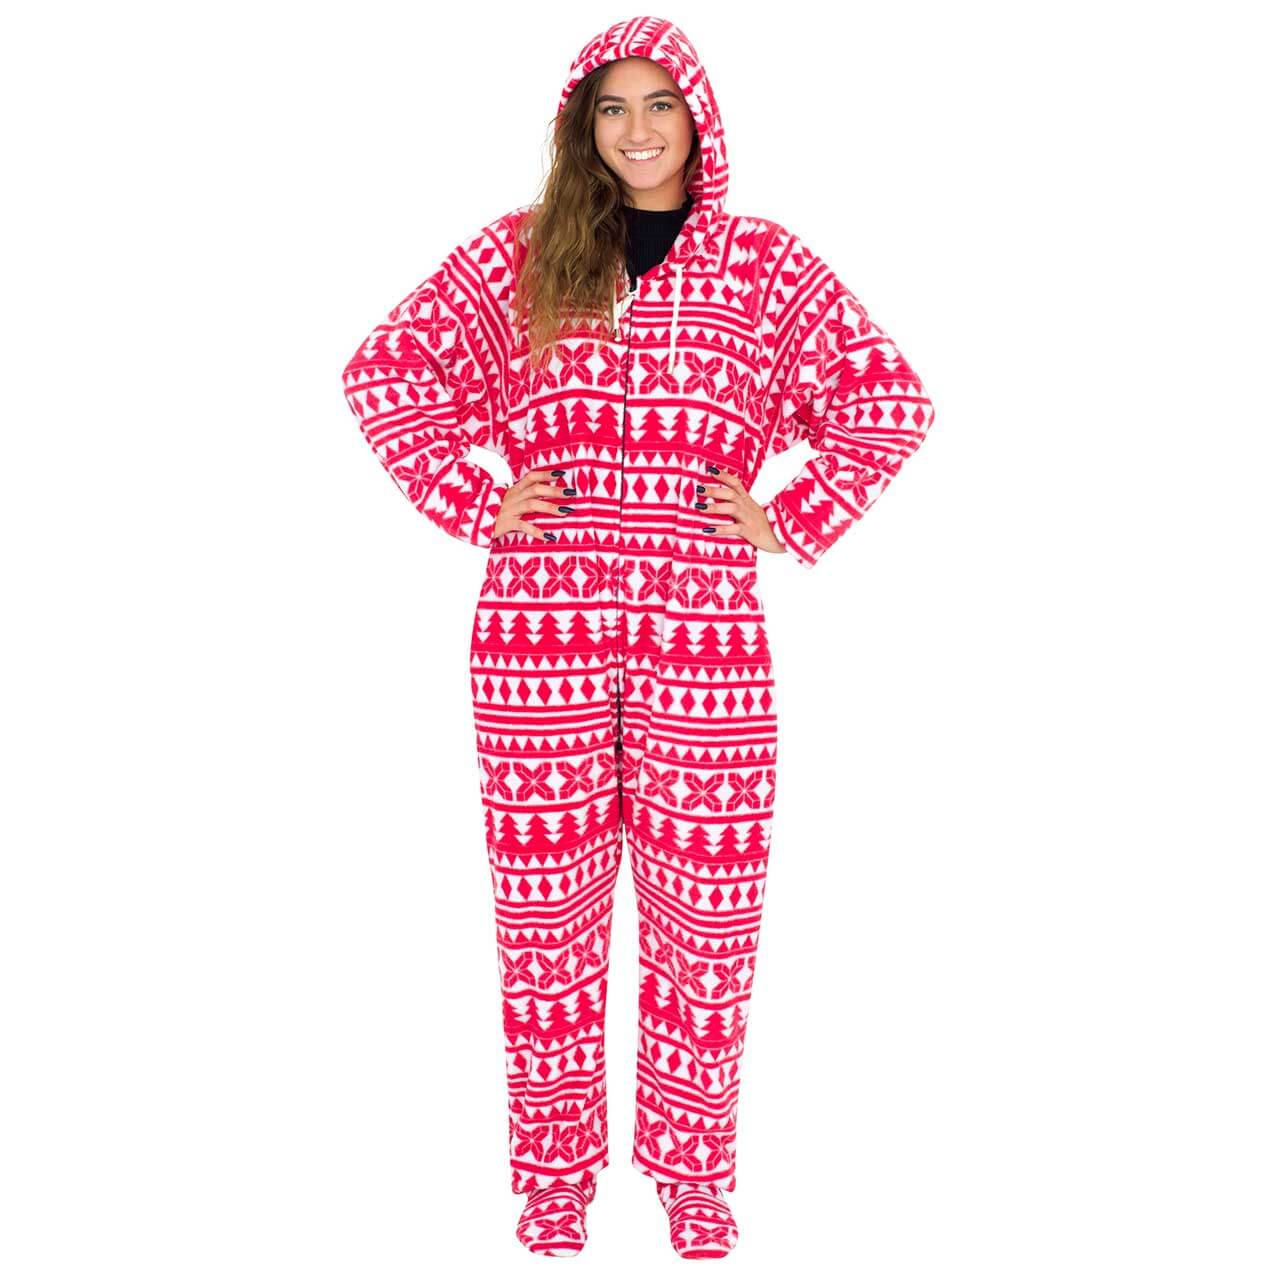 Red and White Ugly Christmas Pajama Suit with Hood